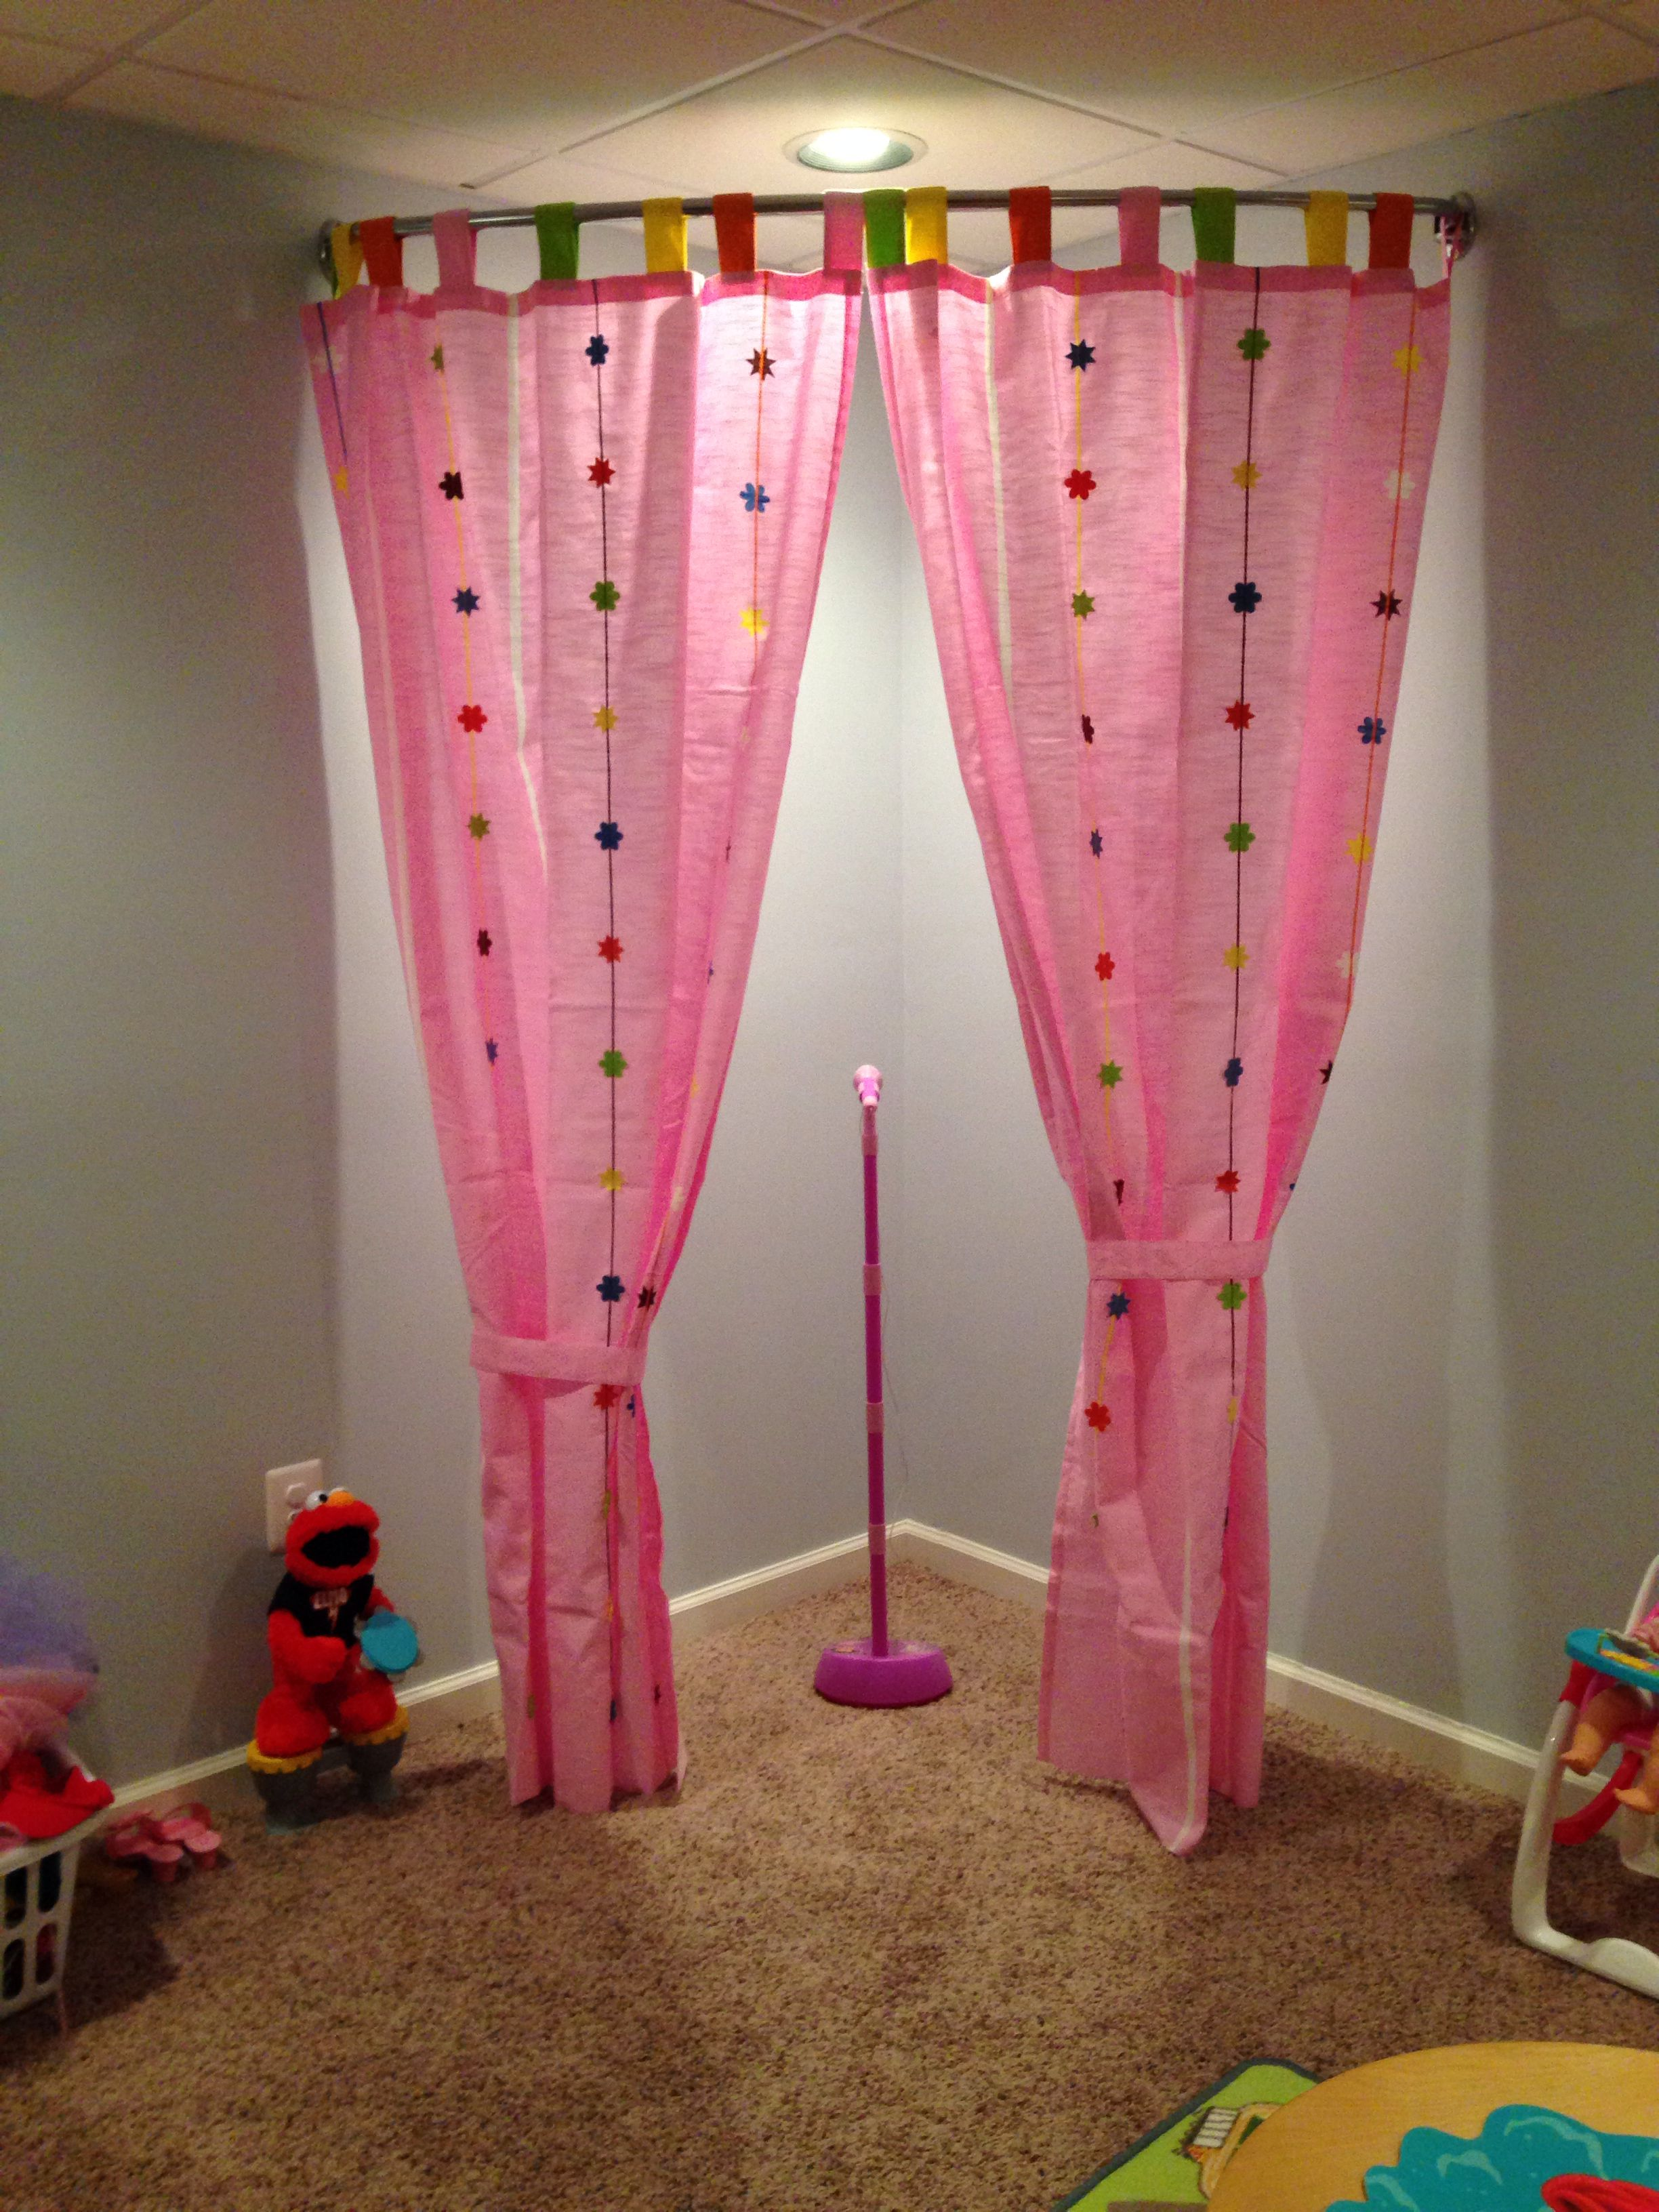 Here's A Playroom Stage Idea I Used A Curved Shower Curtain Rod It